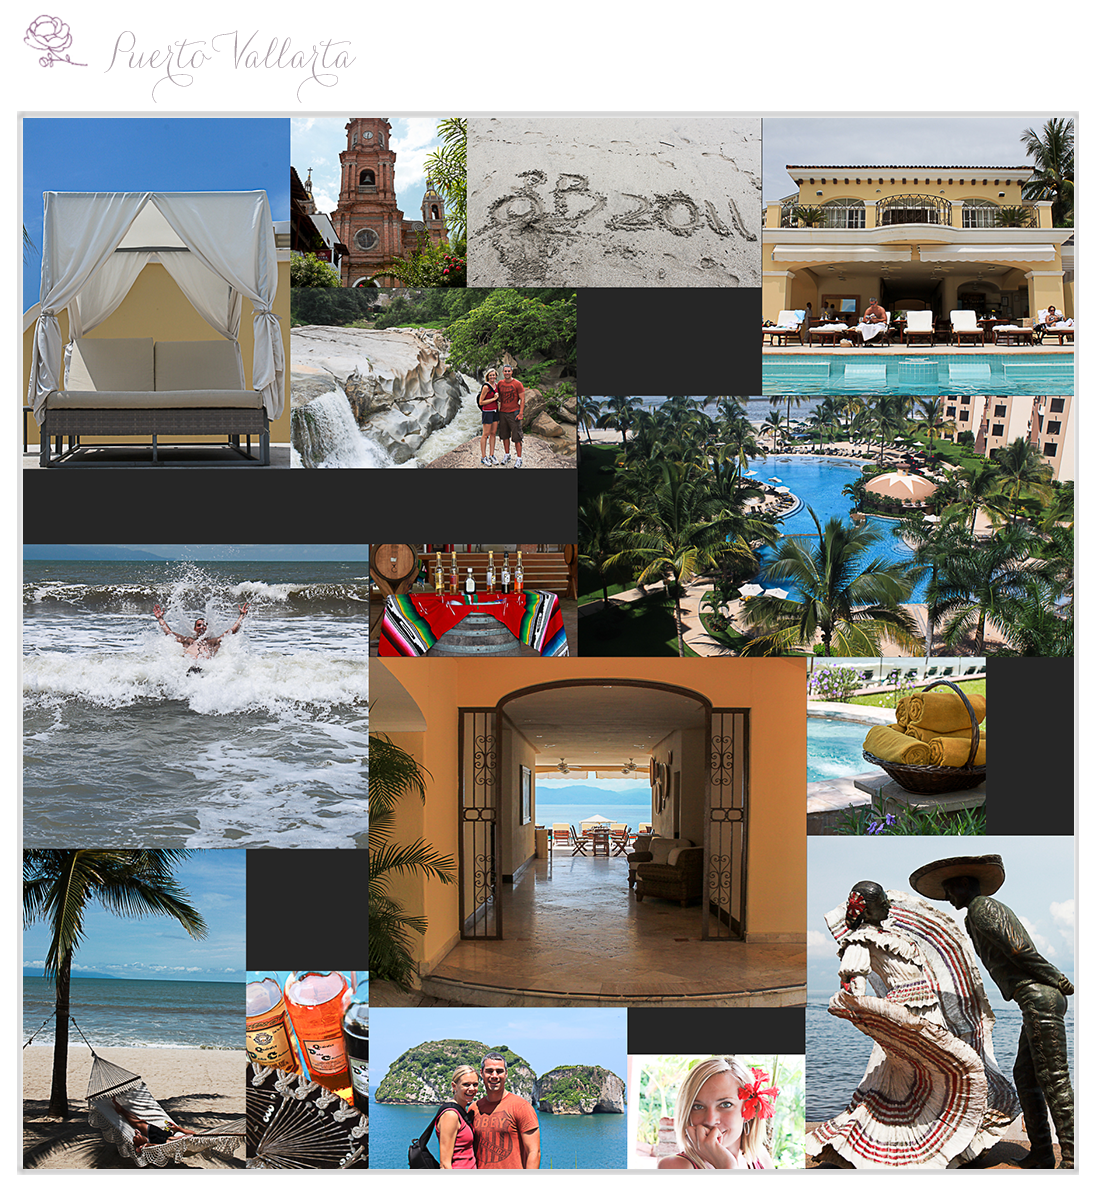 Puerto Vallarta | Our Travels | Wedding Photographer | Pittsburgh Wedding Photographers | Lavender Leigh Photography